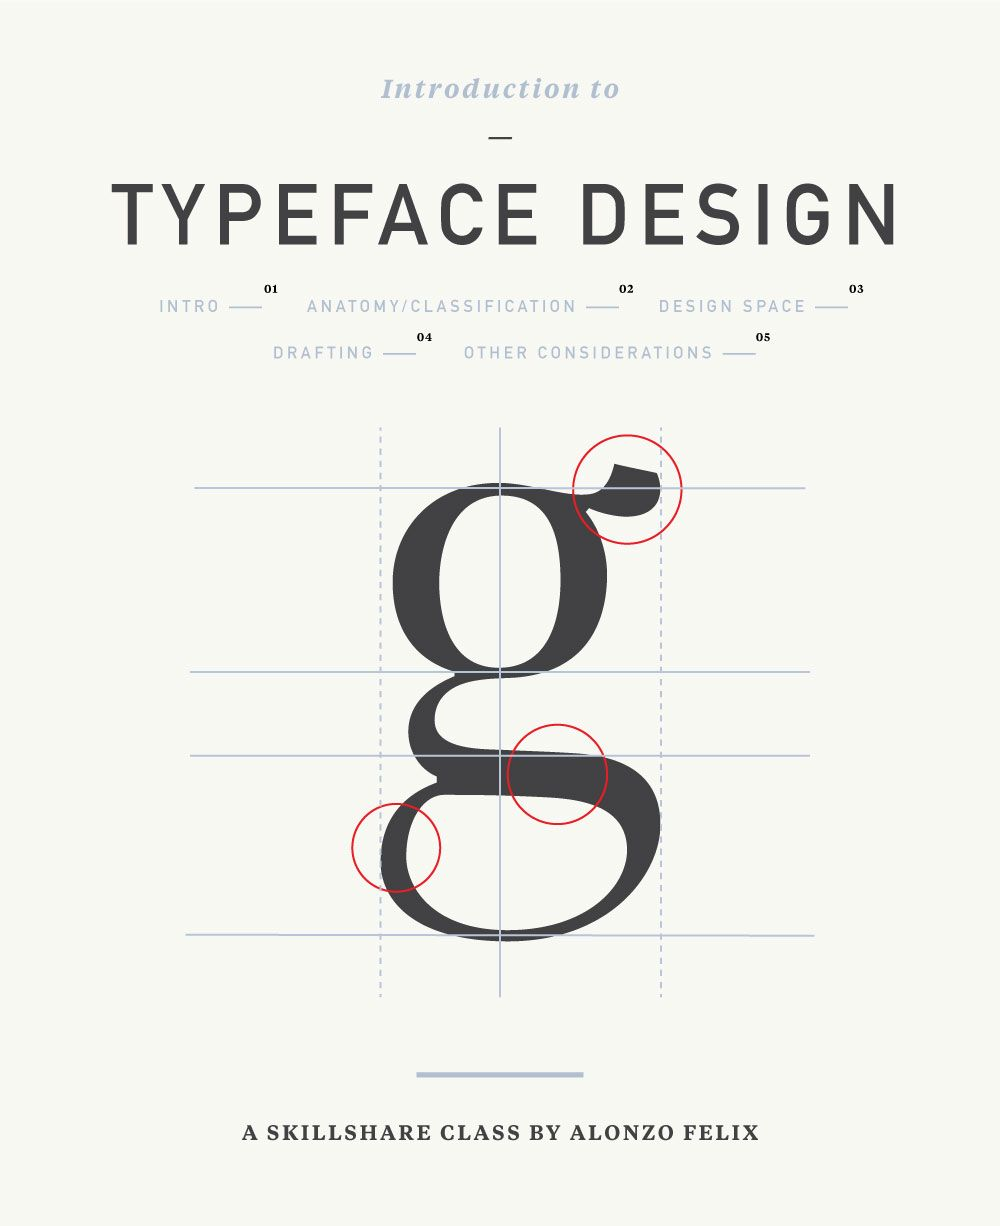 CLASS: Introduction to Typeface Design - Skillshare